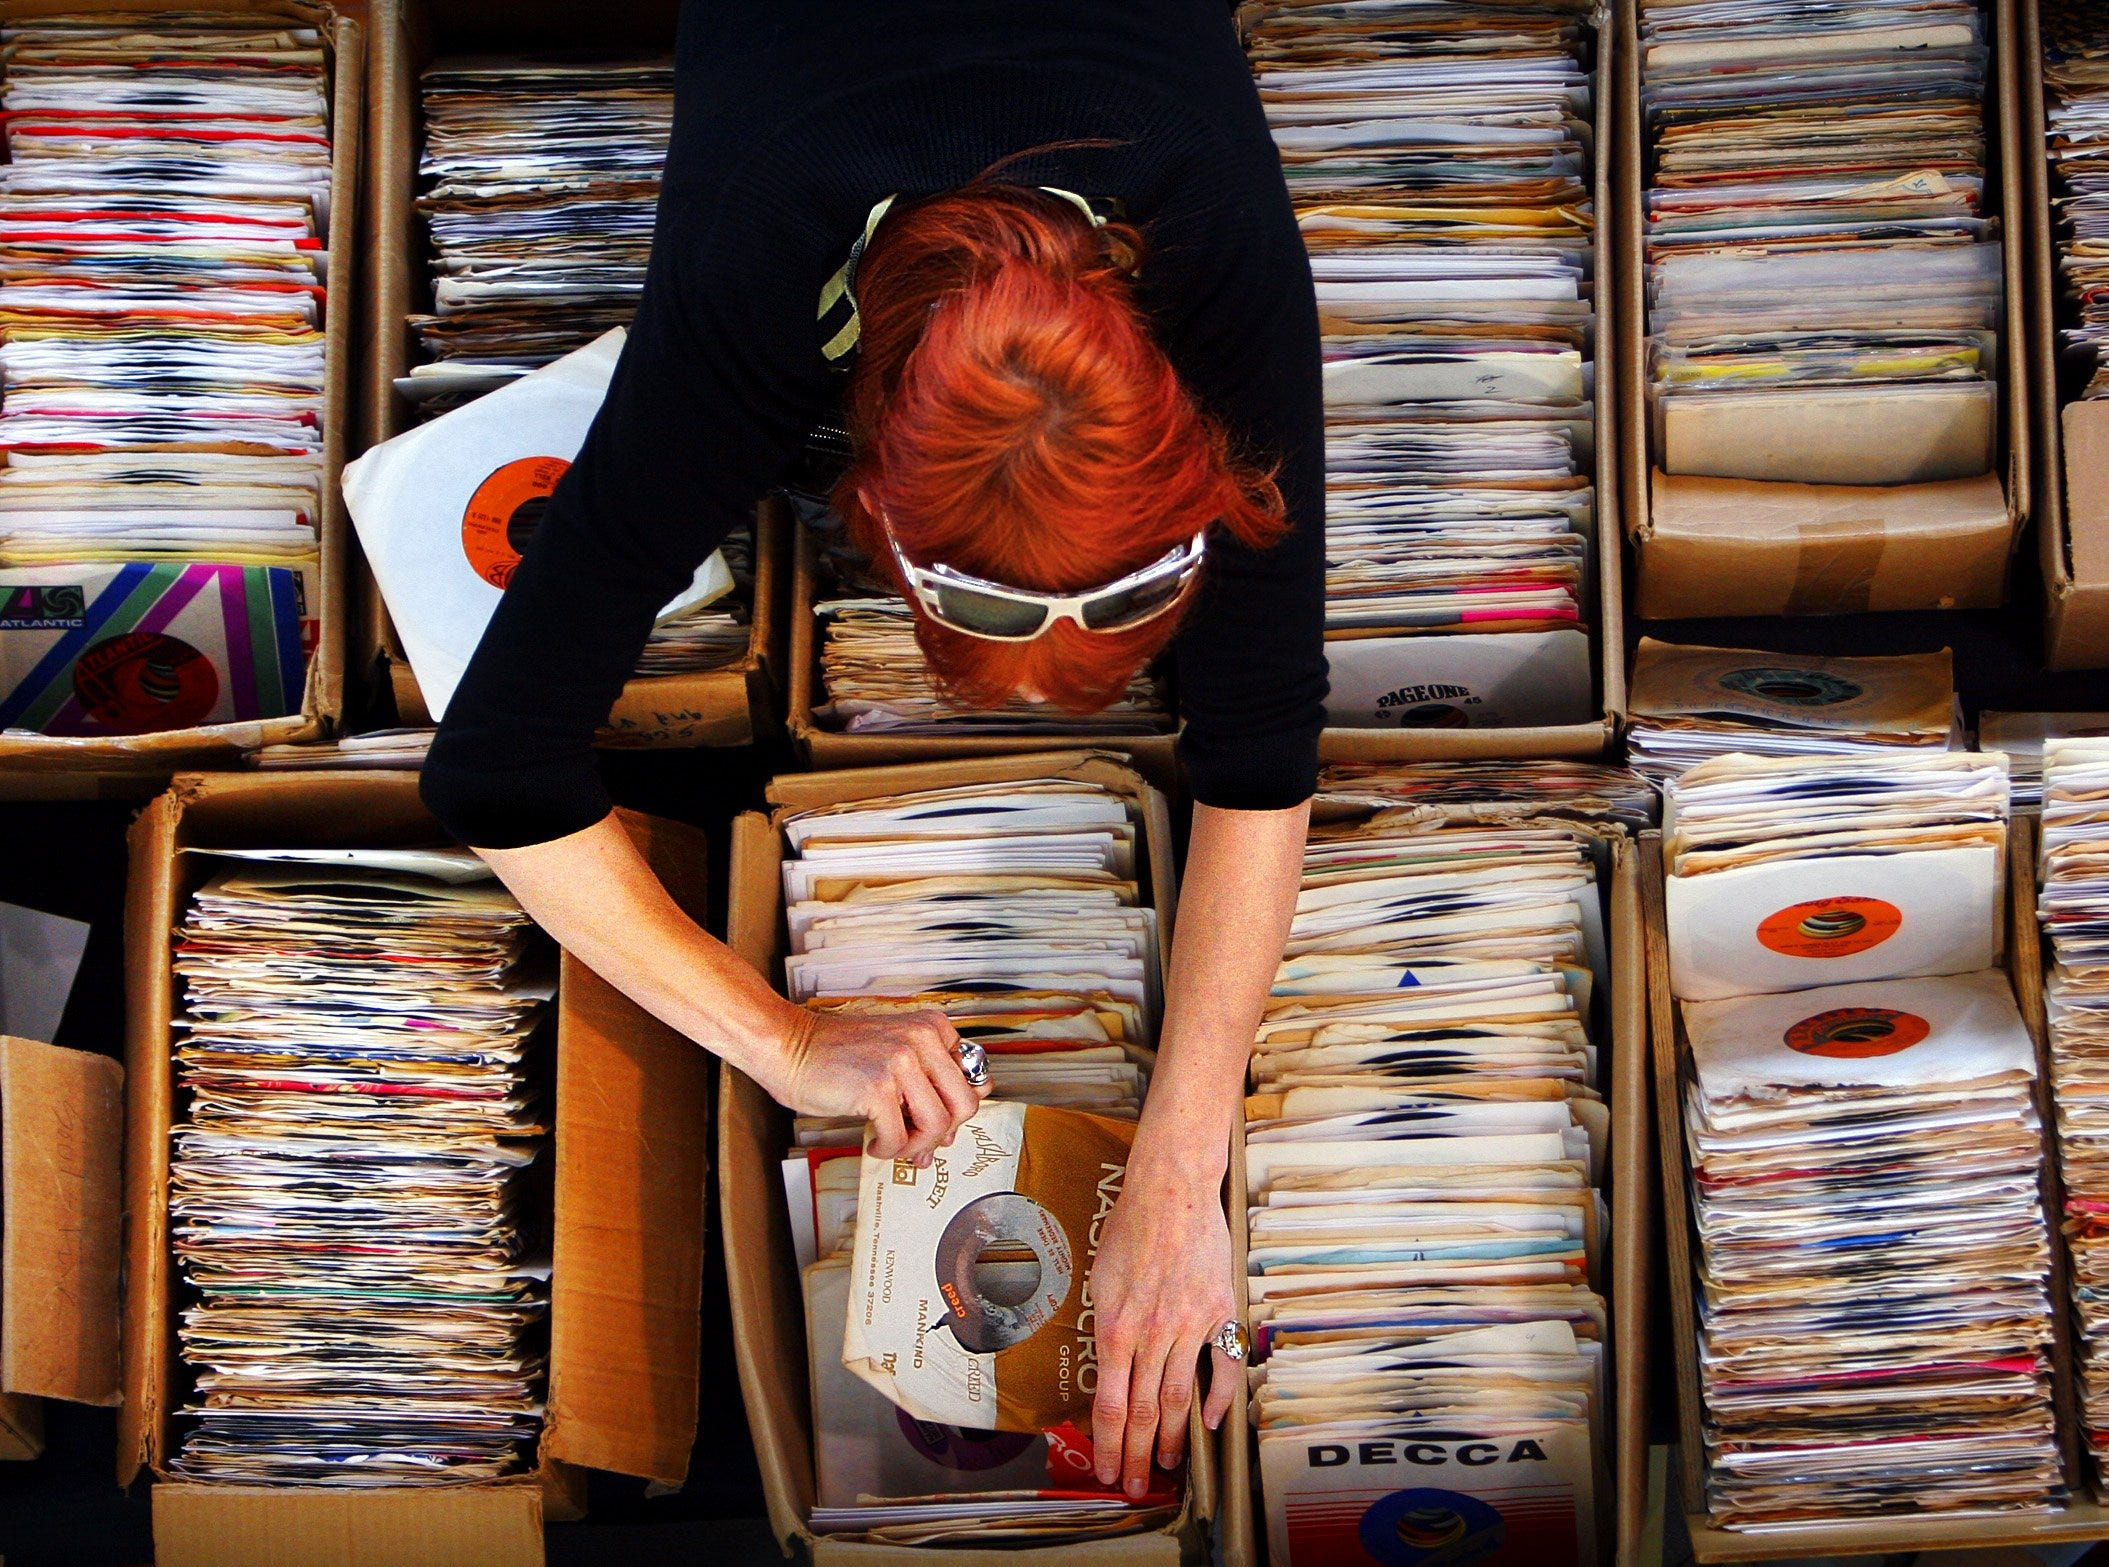 May 8, 2006  - Record collector Miss Alyssa, a music DJ from New York, peruses old 45's searching for soul records during a record swap to kick off the Ponderosa Stomp at the Gibson Guitar Factory.